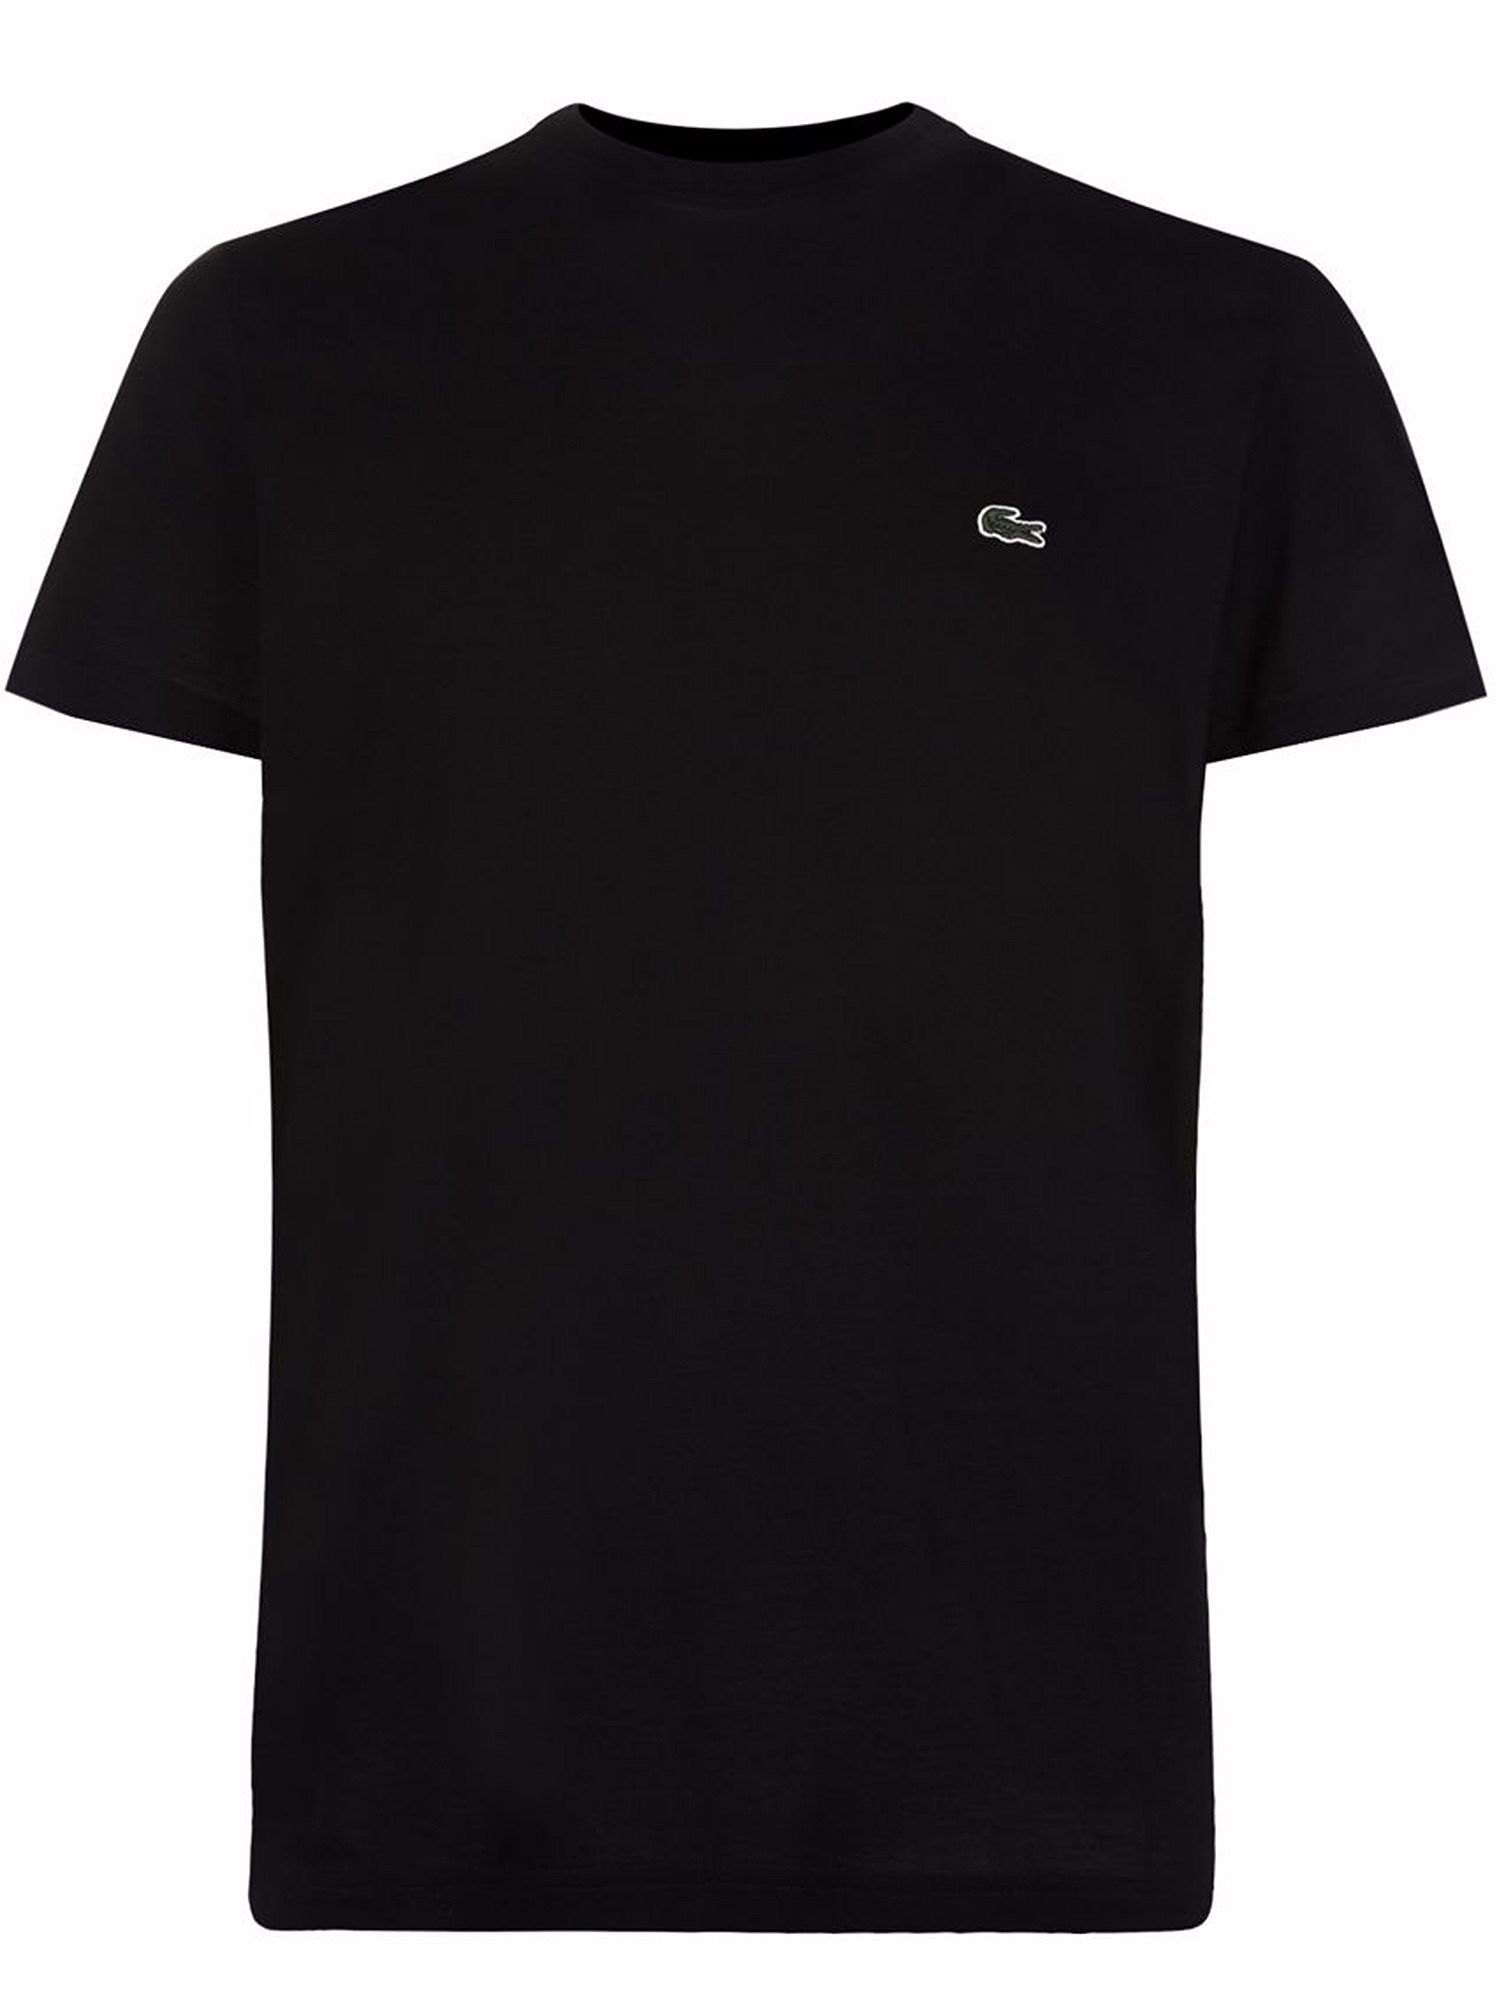 Men's Lacoste Crew Neck Cotton T-shirt, Black